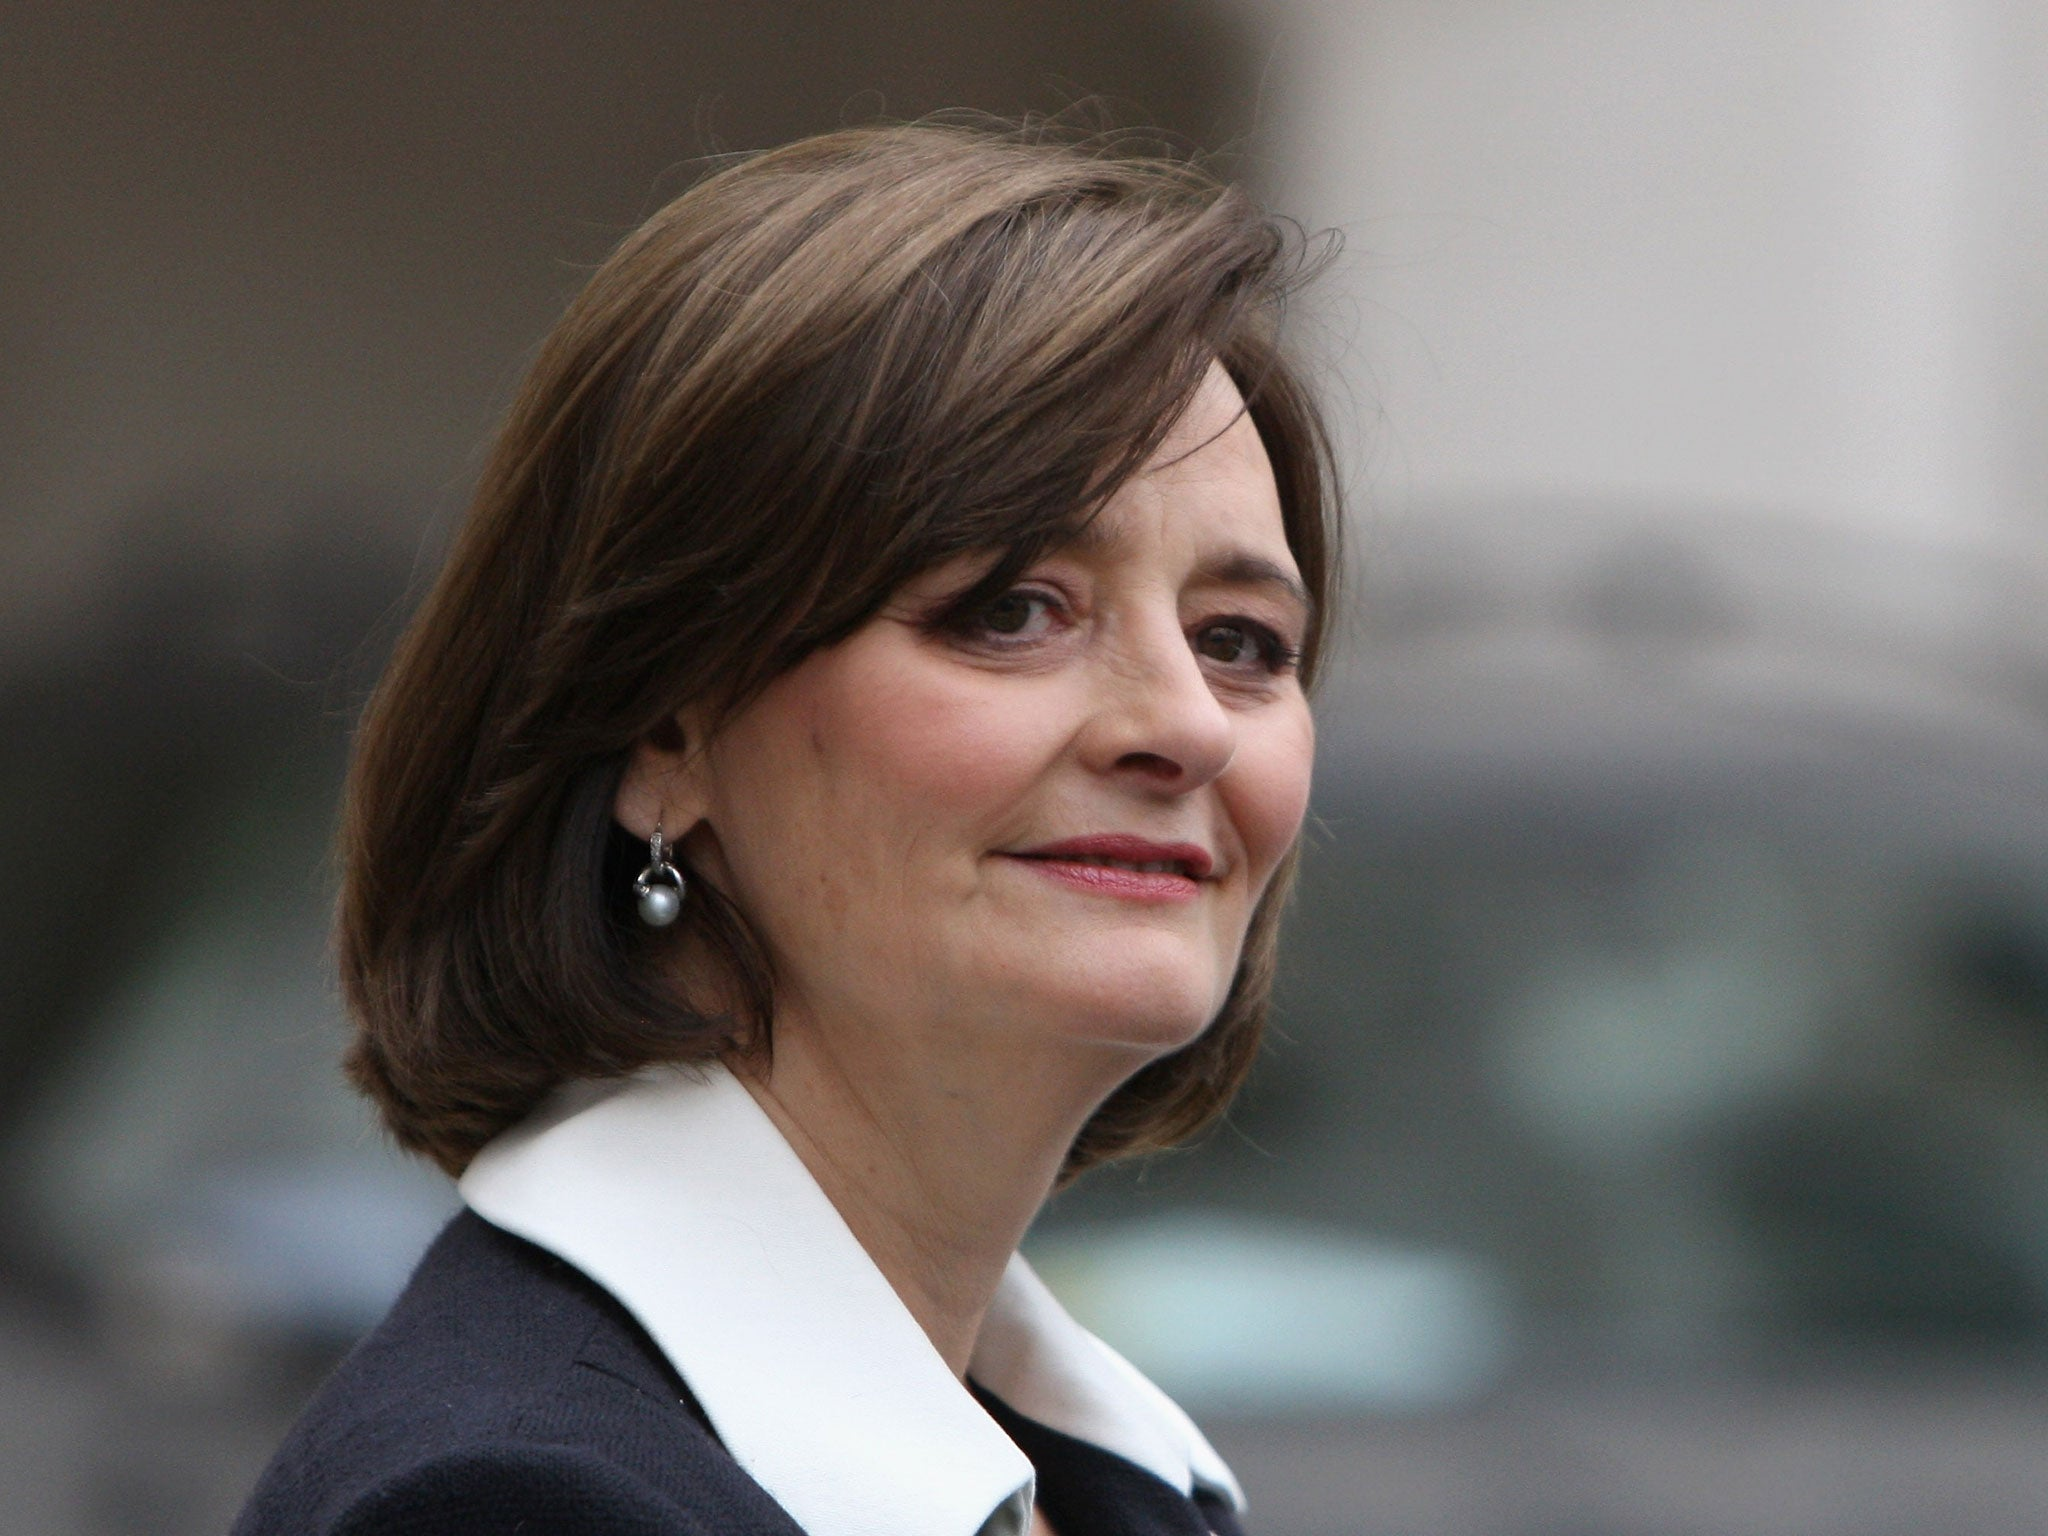 Cherie blair nude picture 72